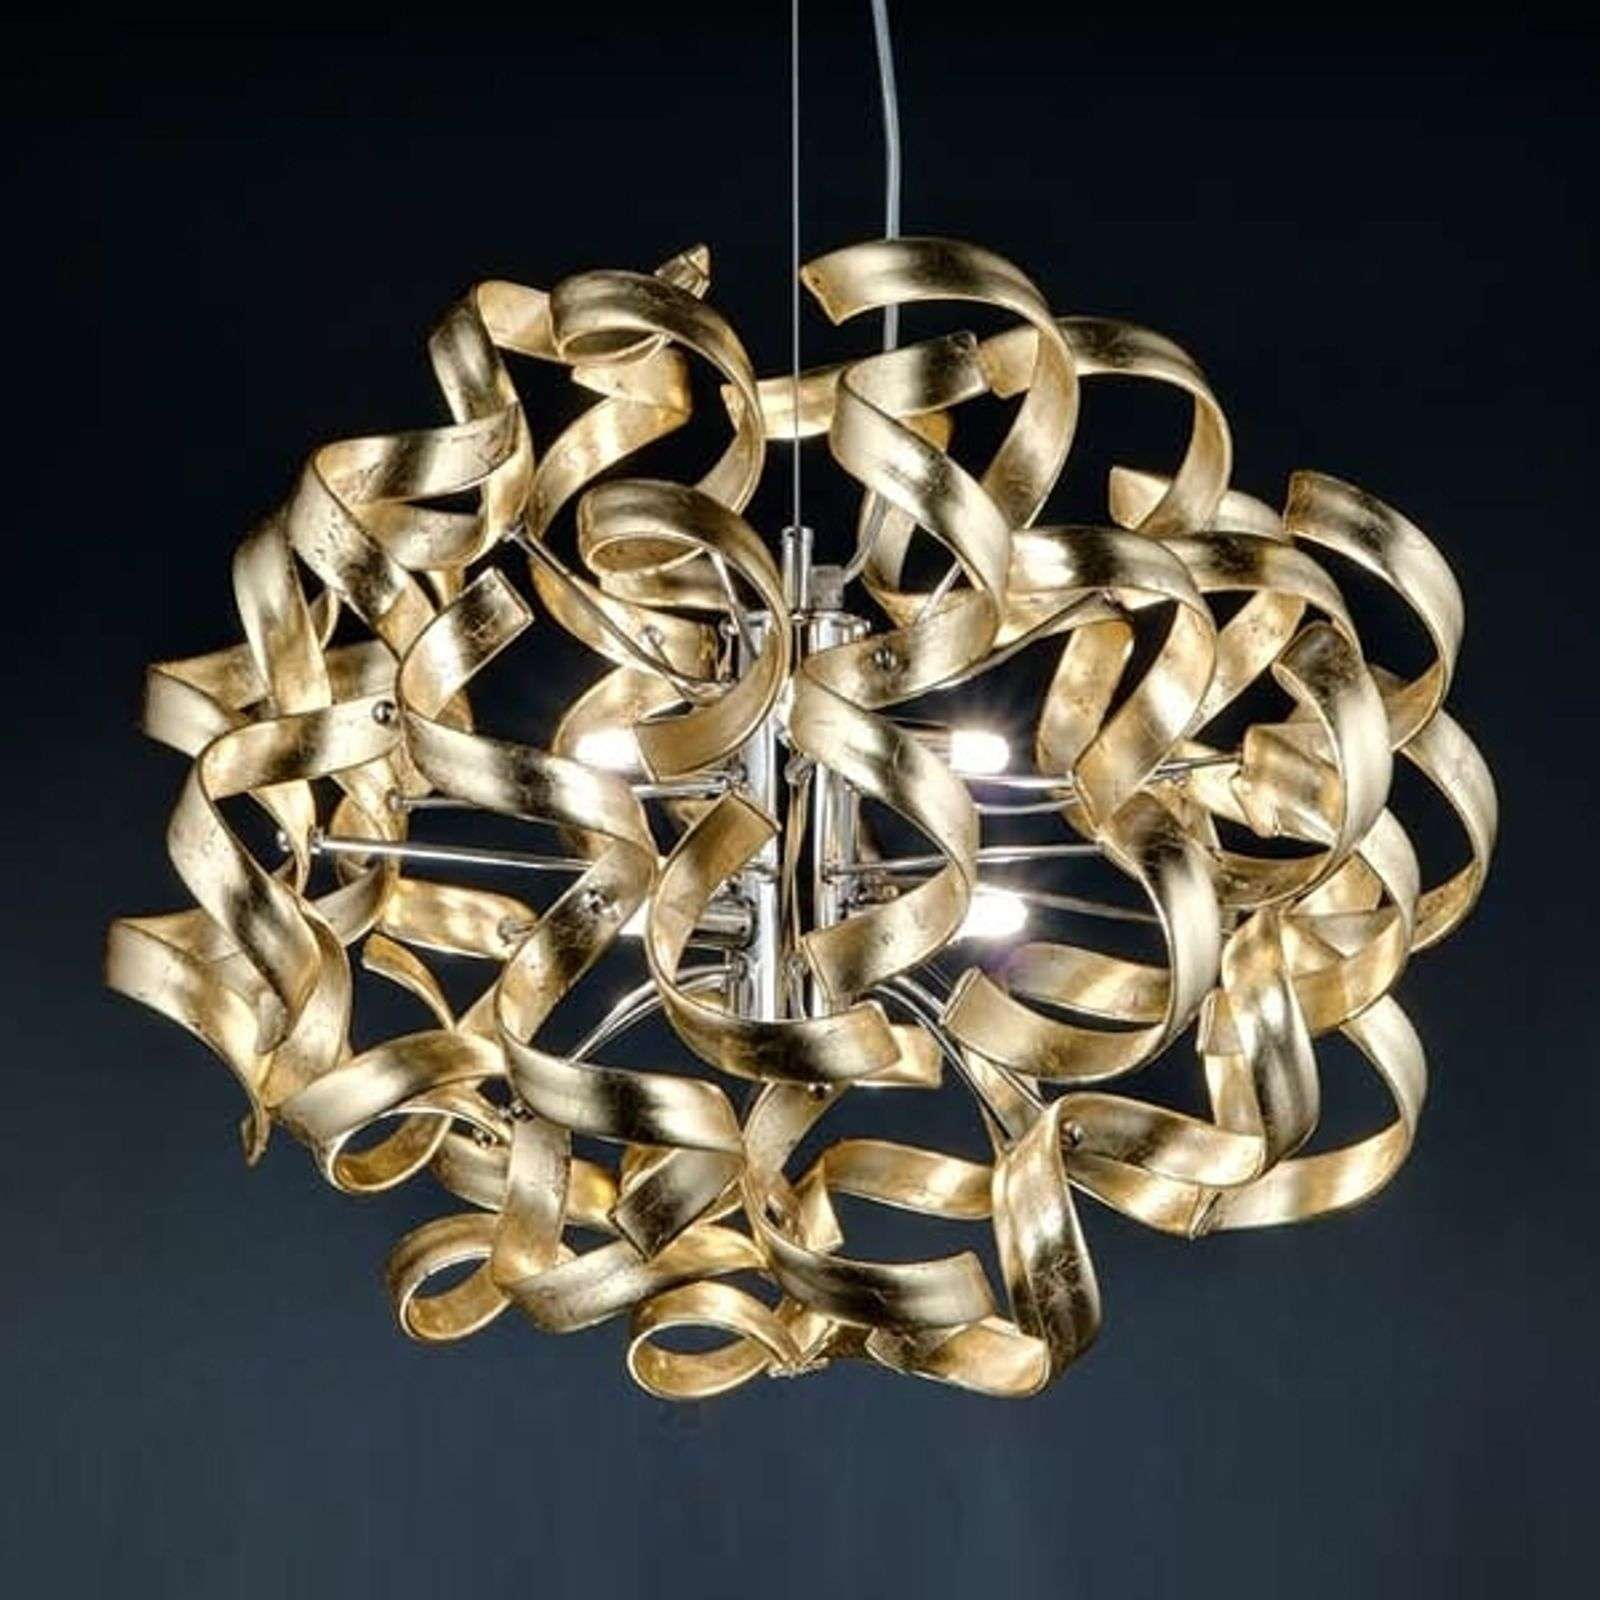 Belle suspension GOLD, Ø 50 cm